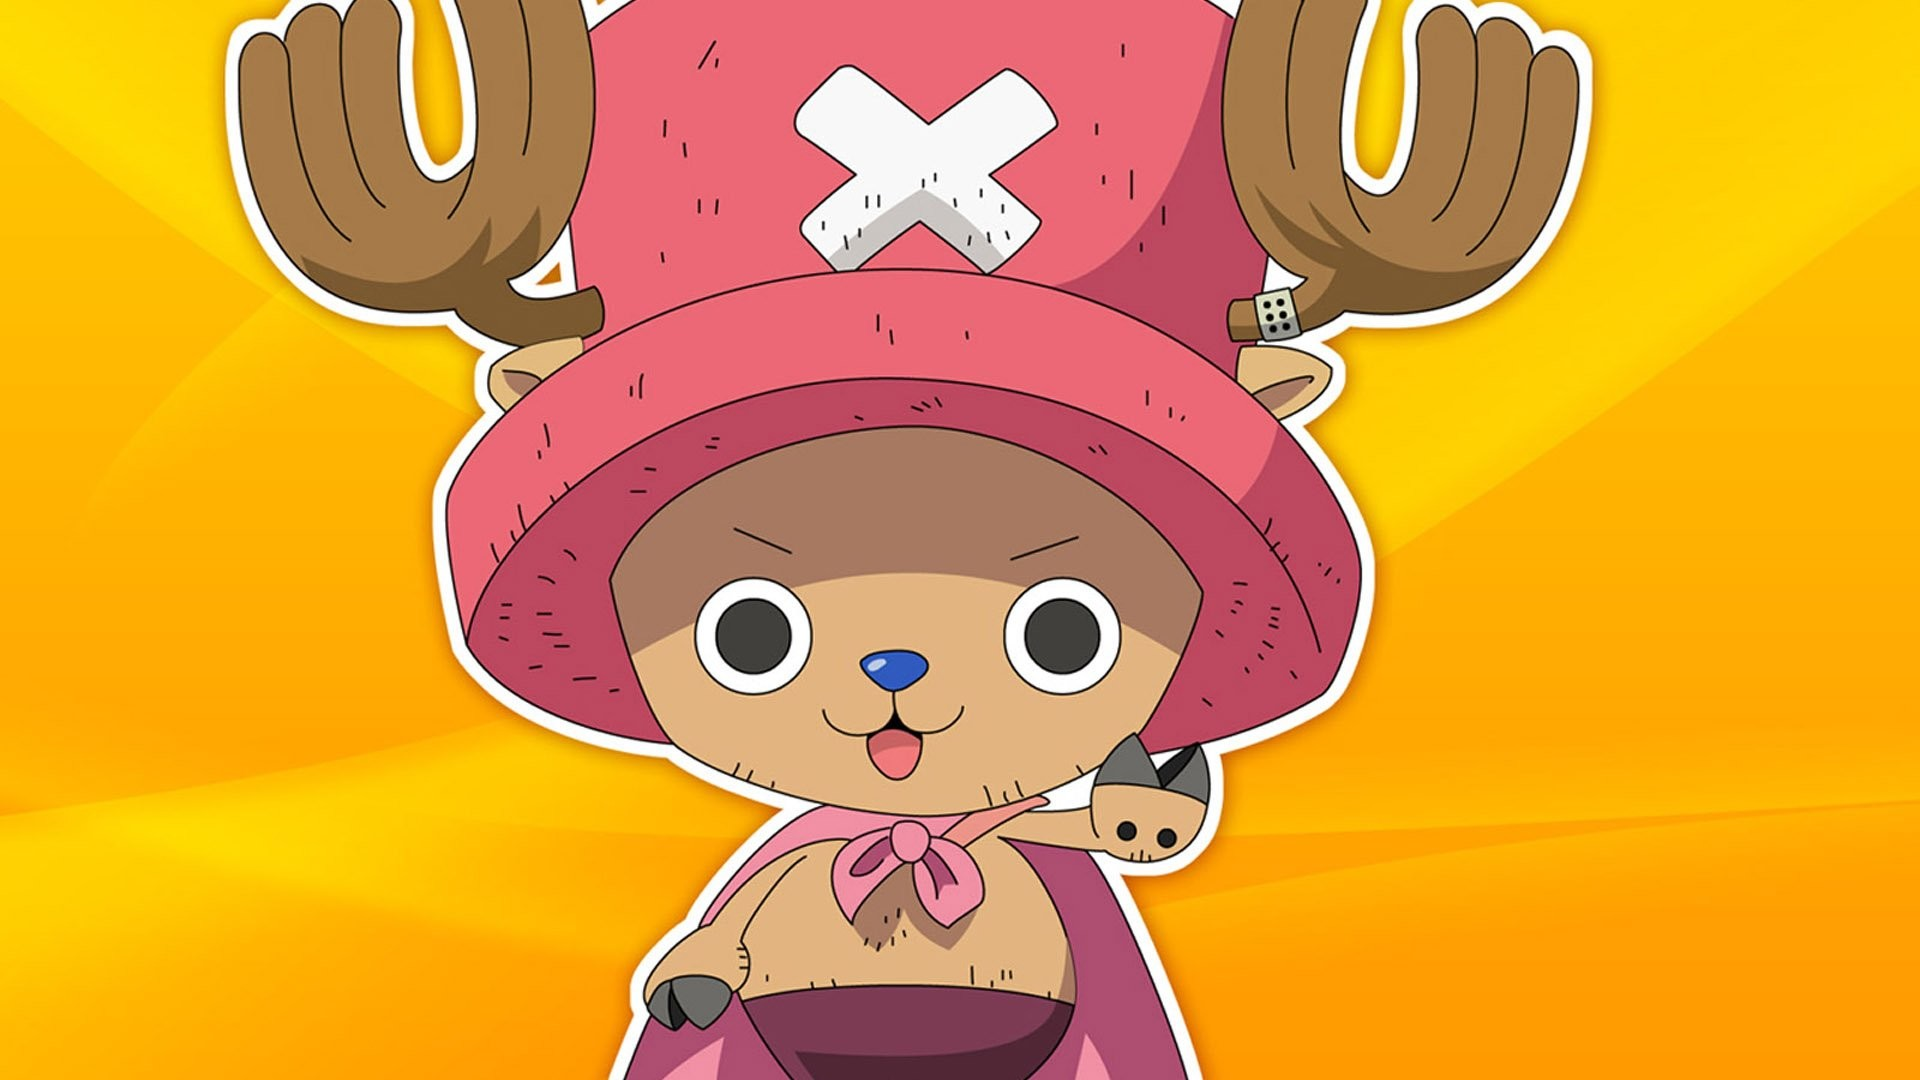 Chopper Wallpaper One Piece Posted By Samantha Thompson